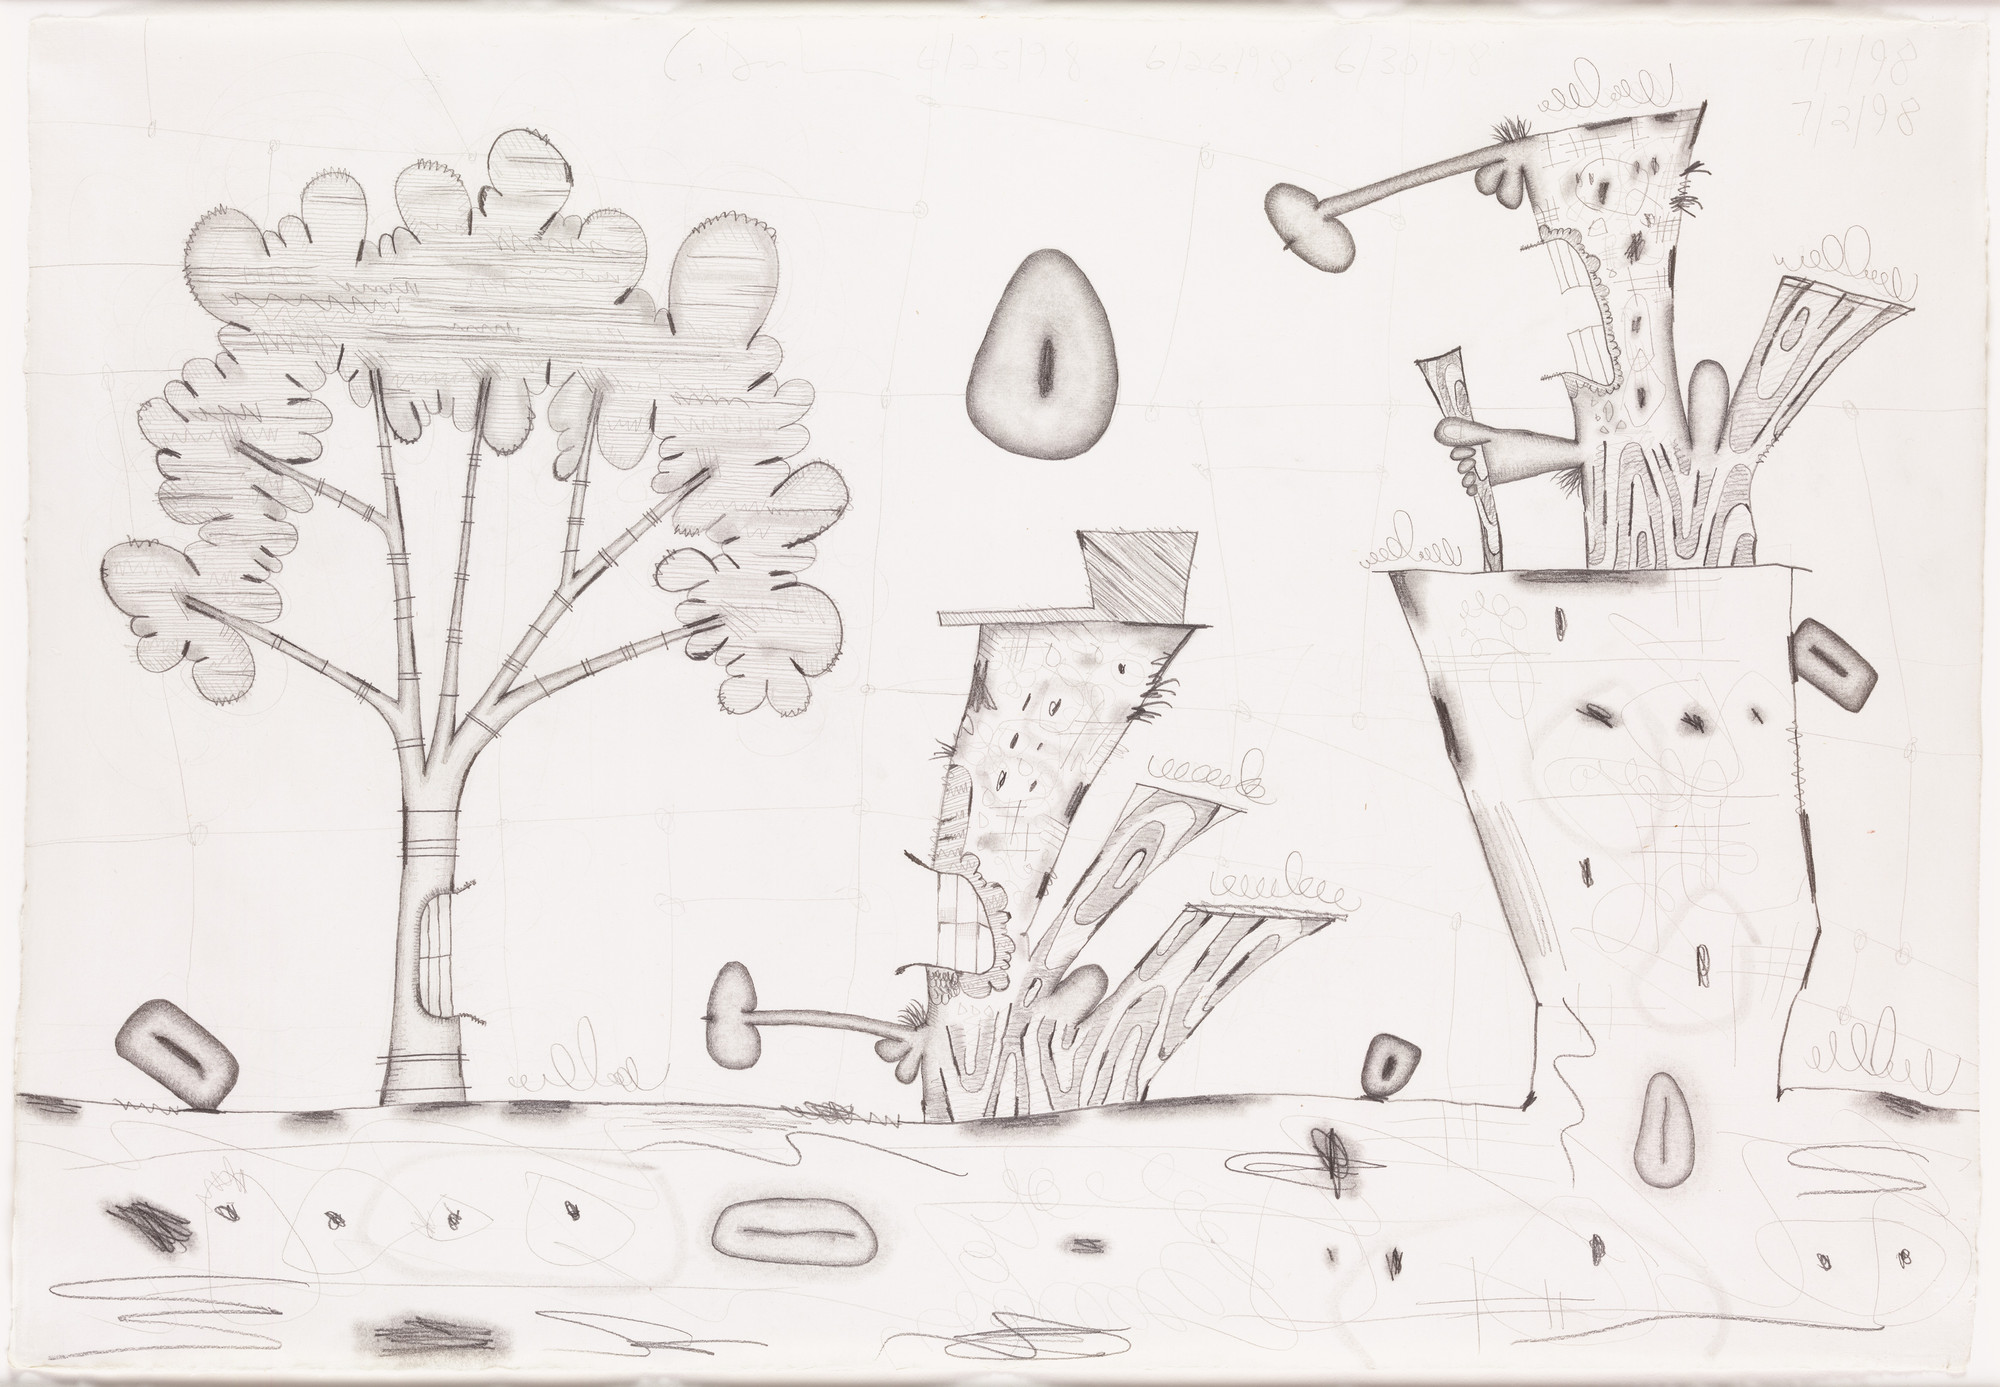 Carroll Dunham. Untitled. 1998